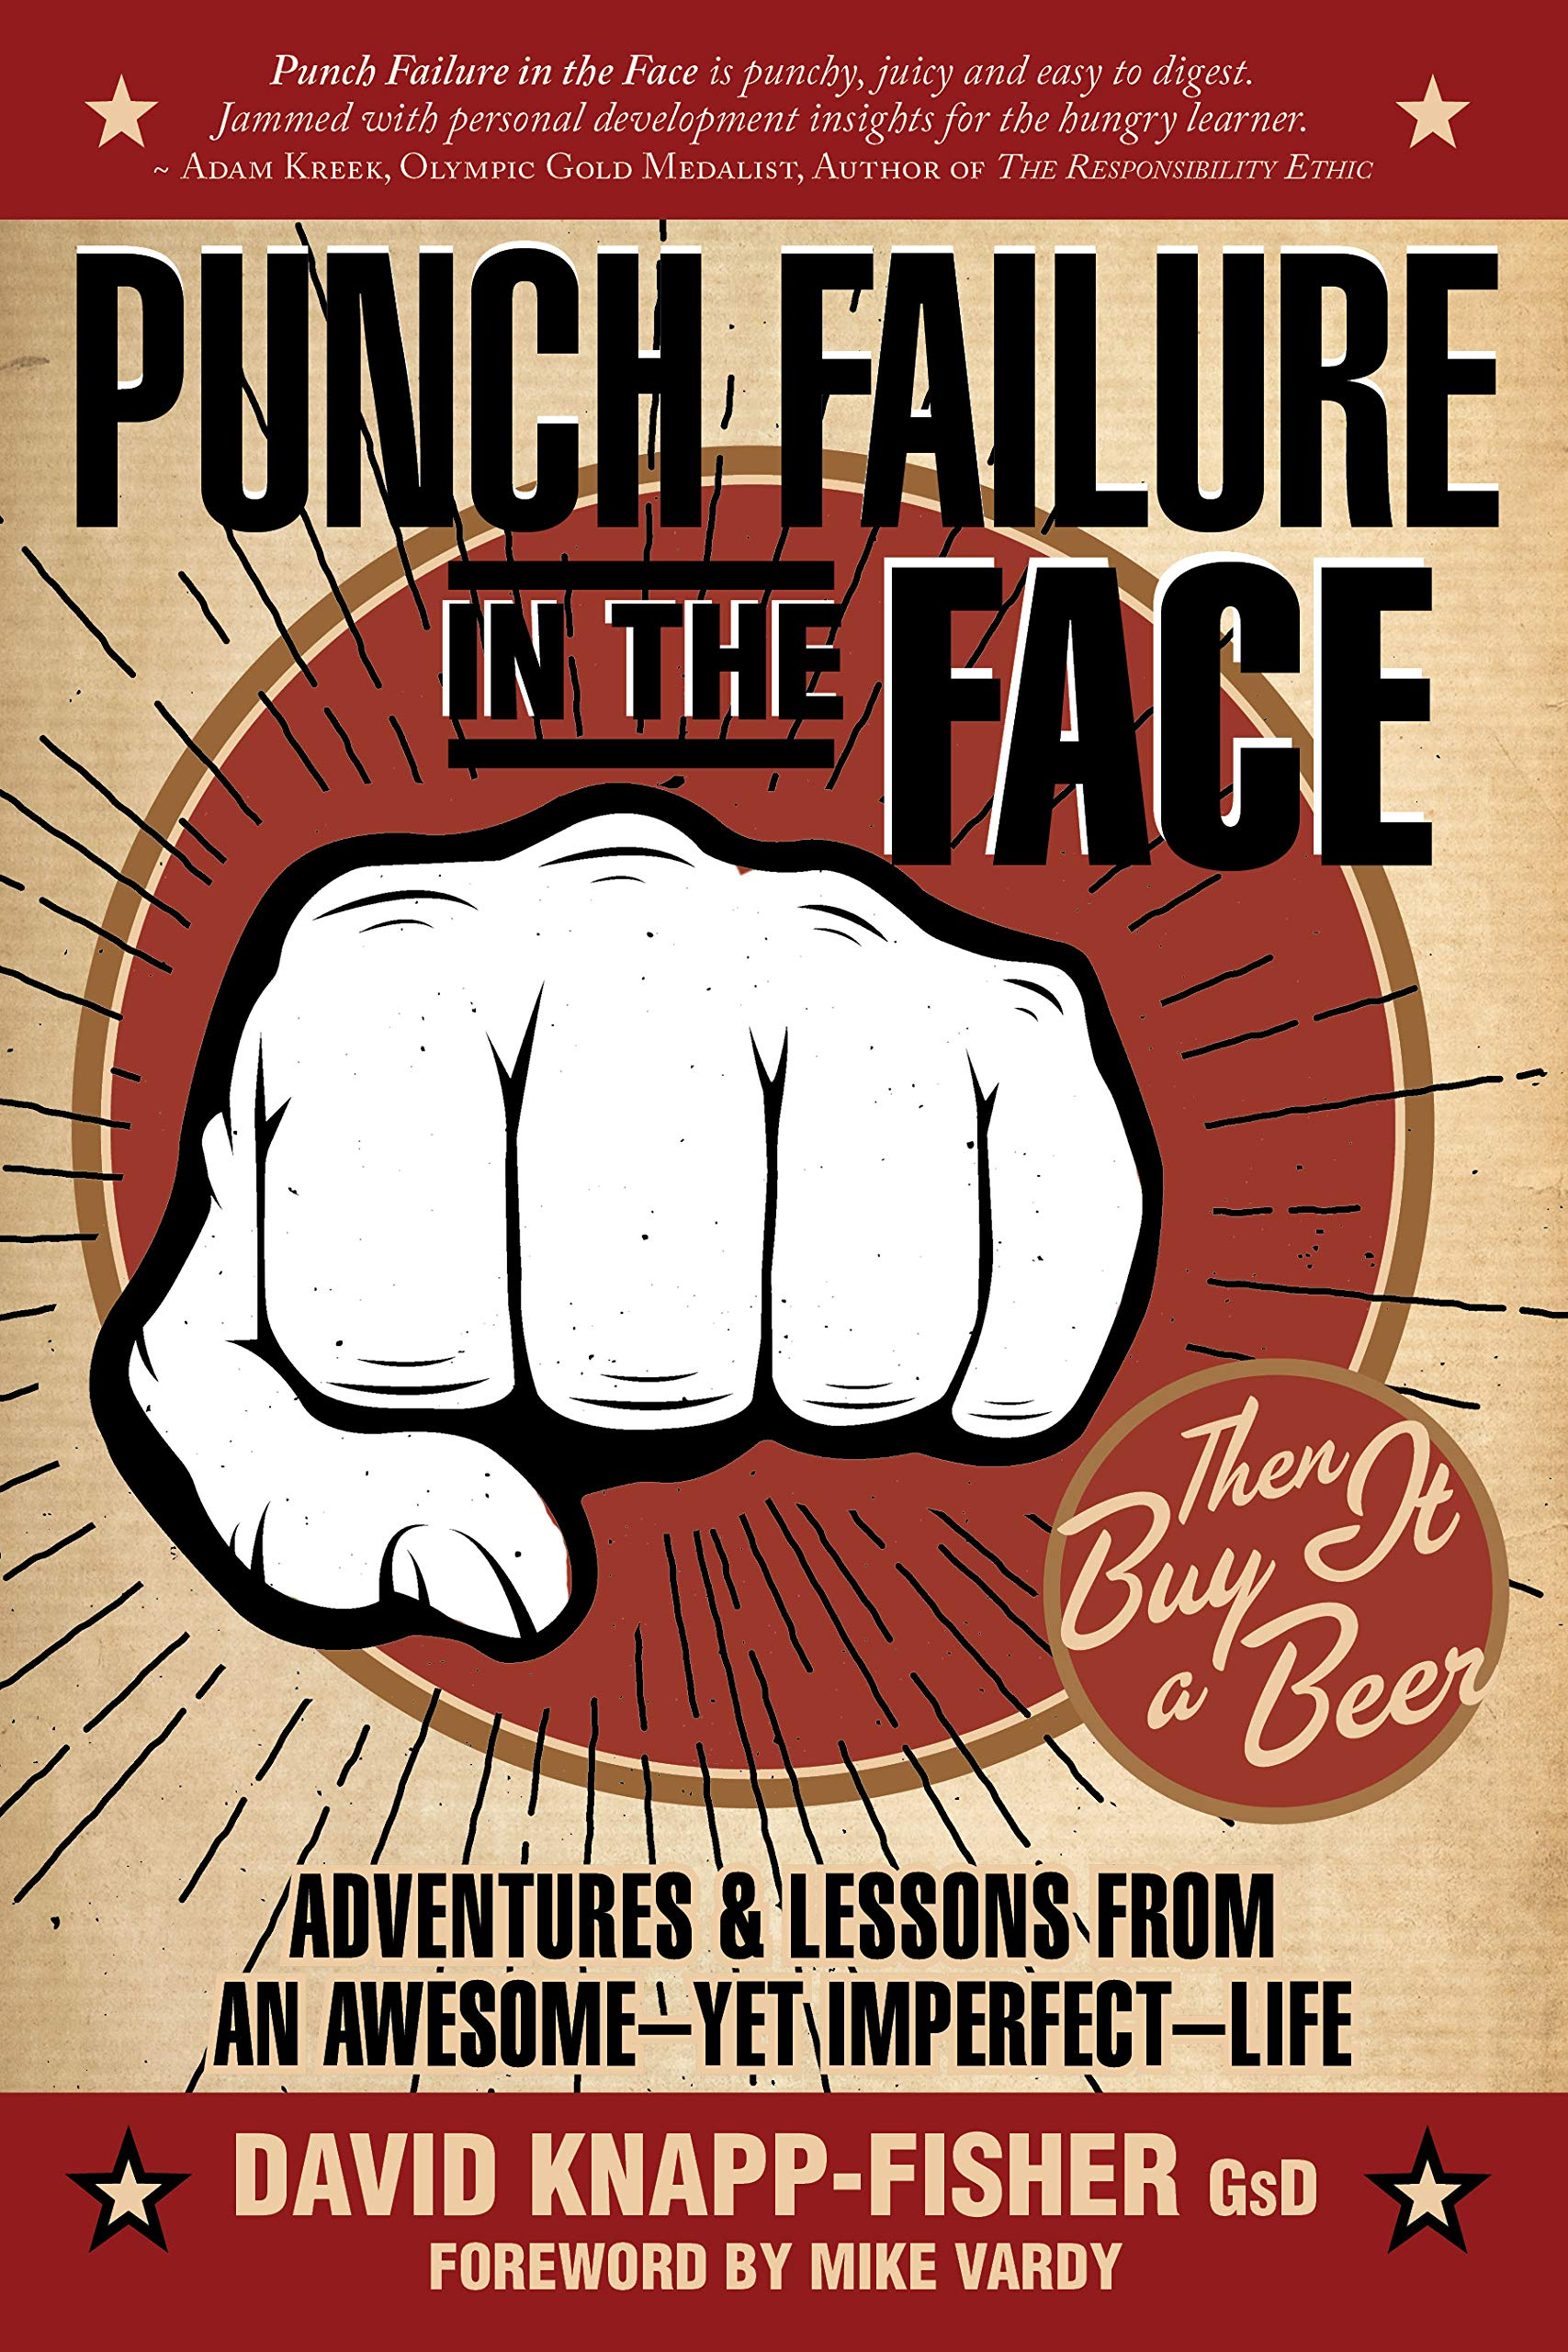 Punch Failure in the Face: Adventures & Lessons From An Awesome-Yet Imperfect-Life